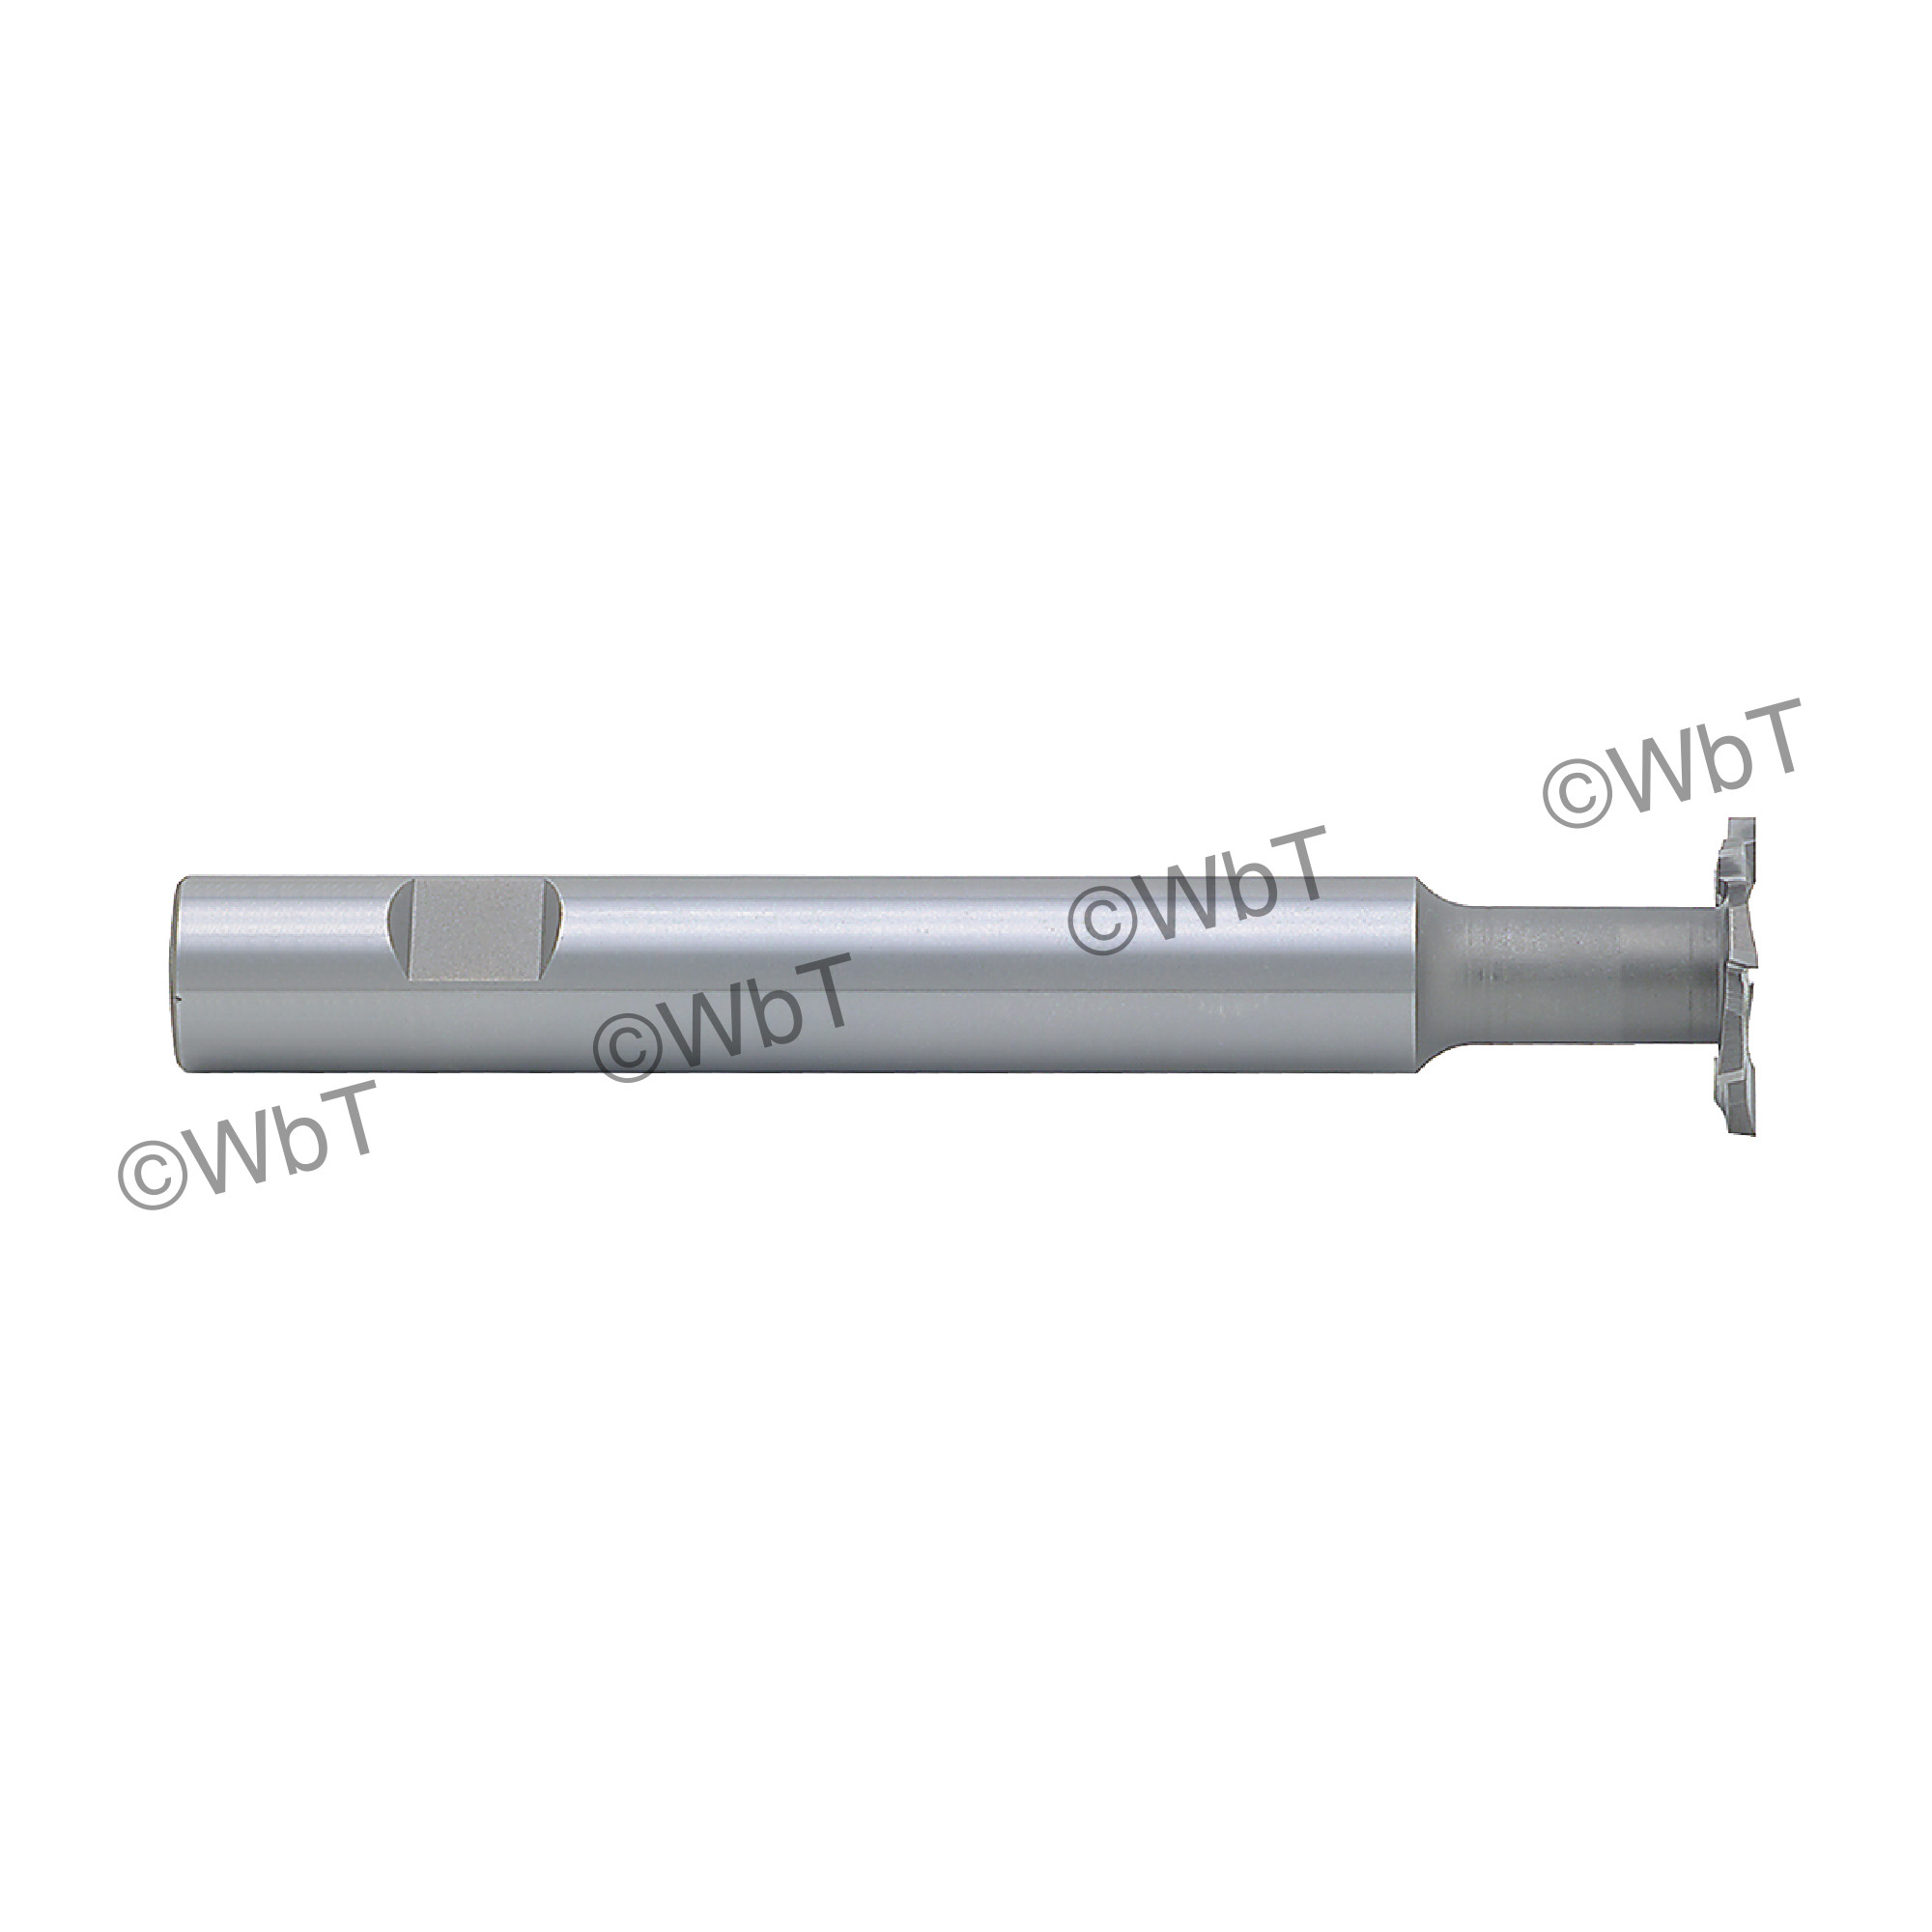 M42 8% Cobalt Side Milling Cutters With Long Shank